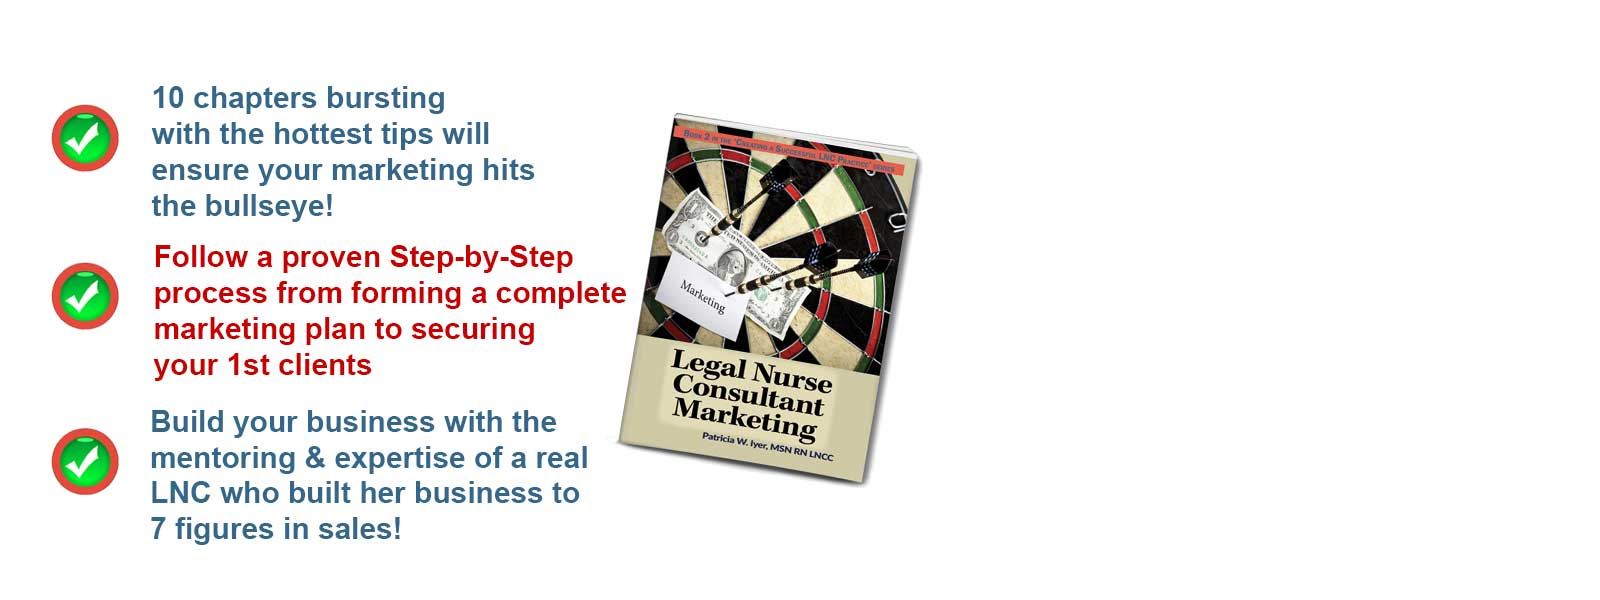 How to Start or Grow Your Legal Nurse Consulting Business